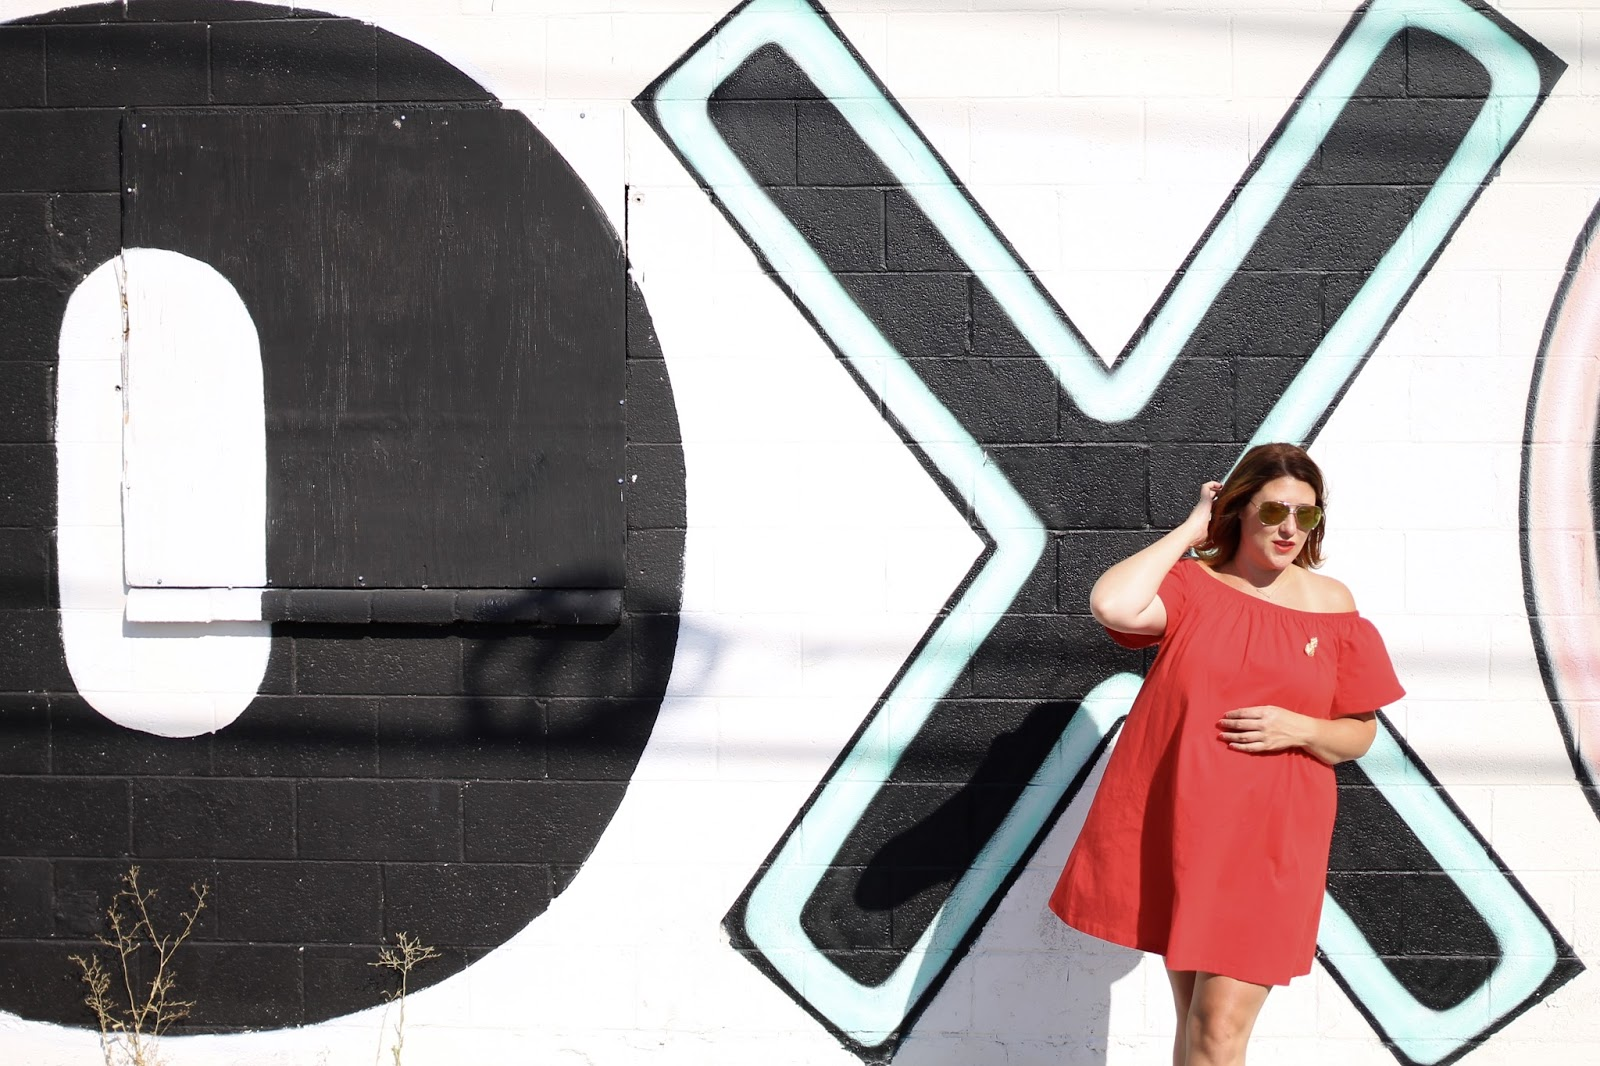 Las vegas mural, off the shoulder dress, converse. raybay aviators, red hair, easy maternity outfit